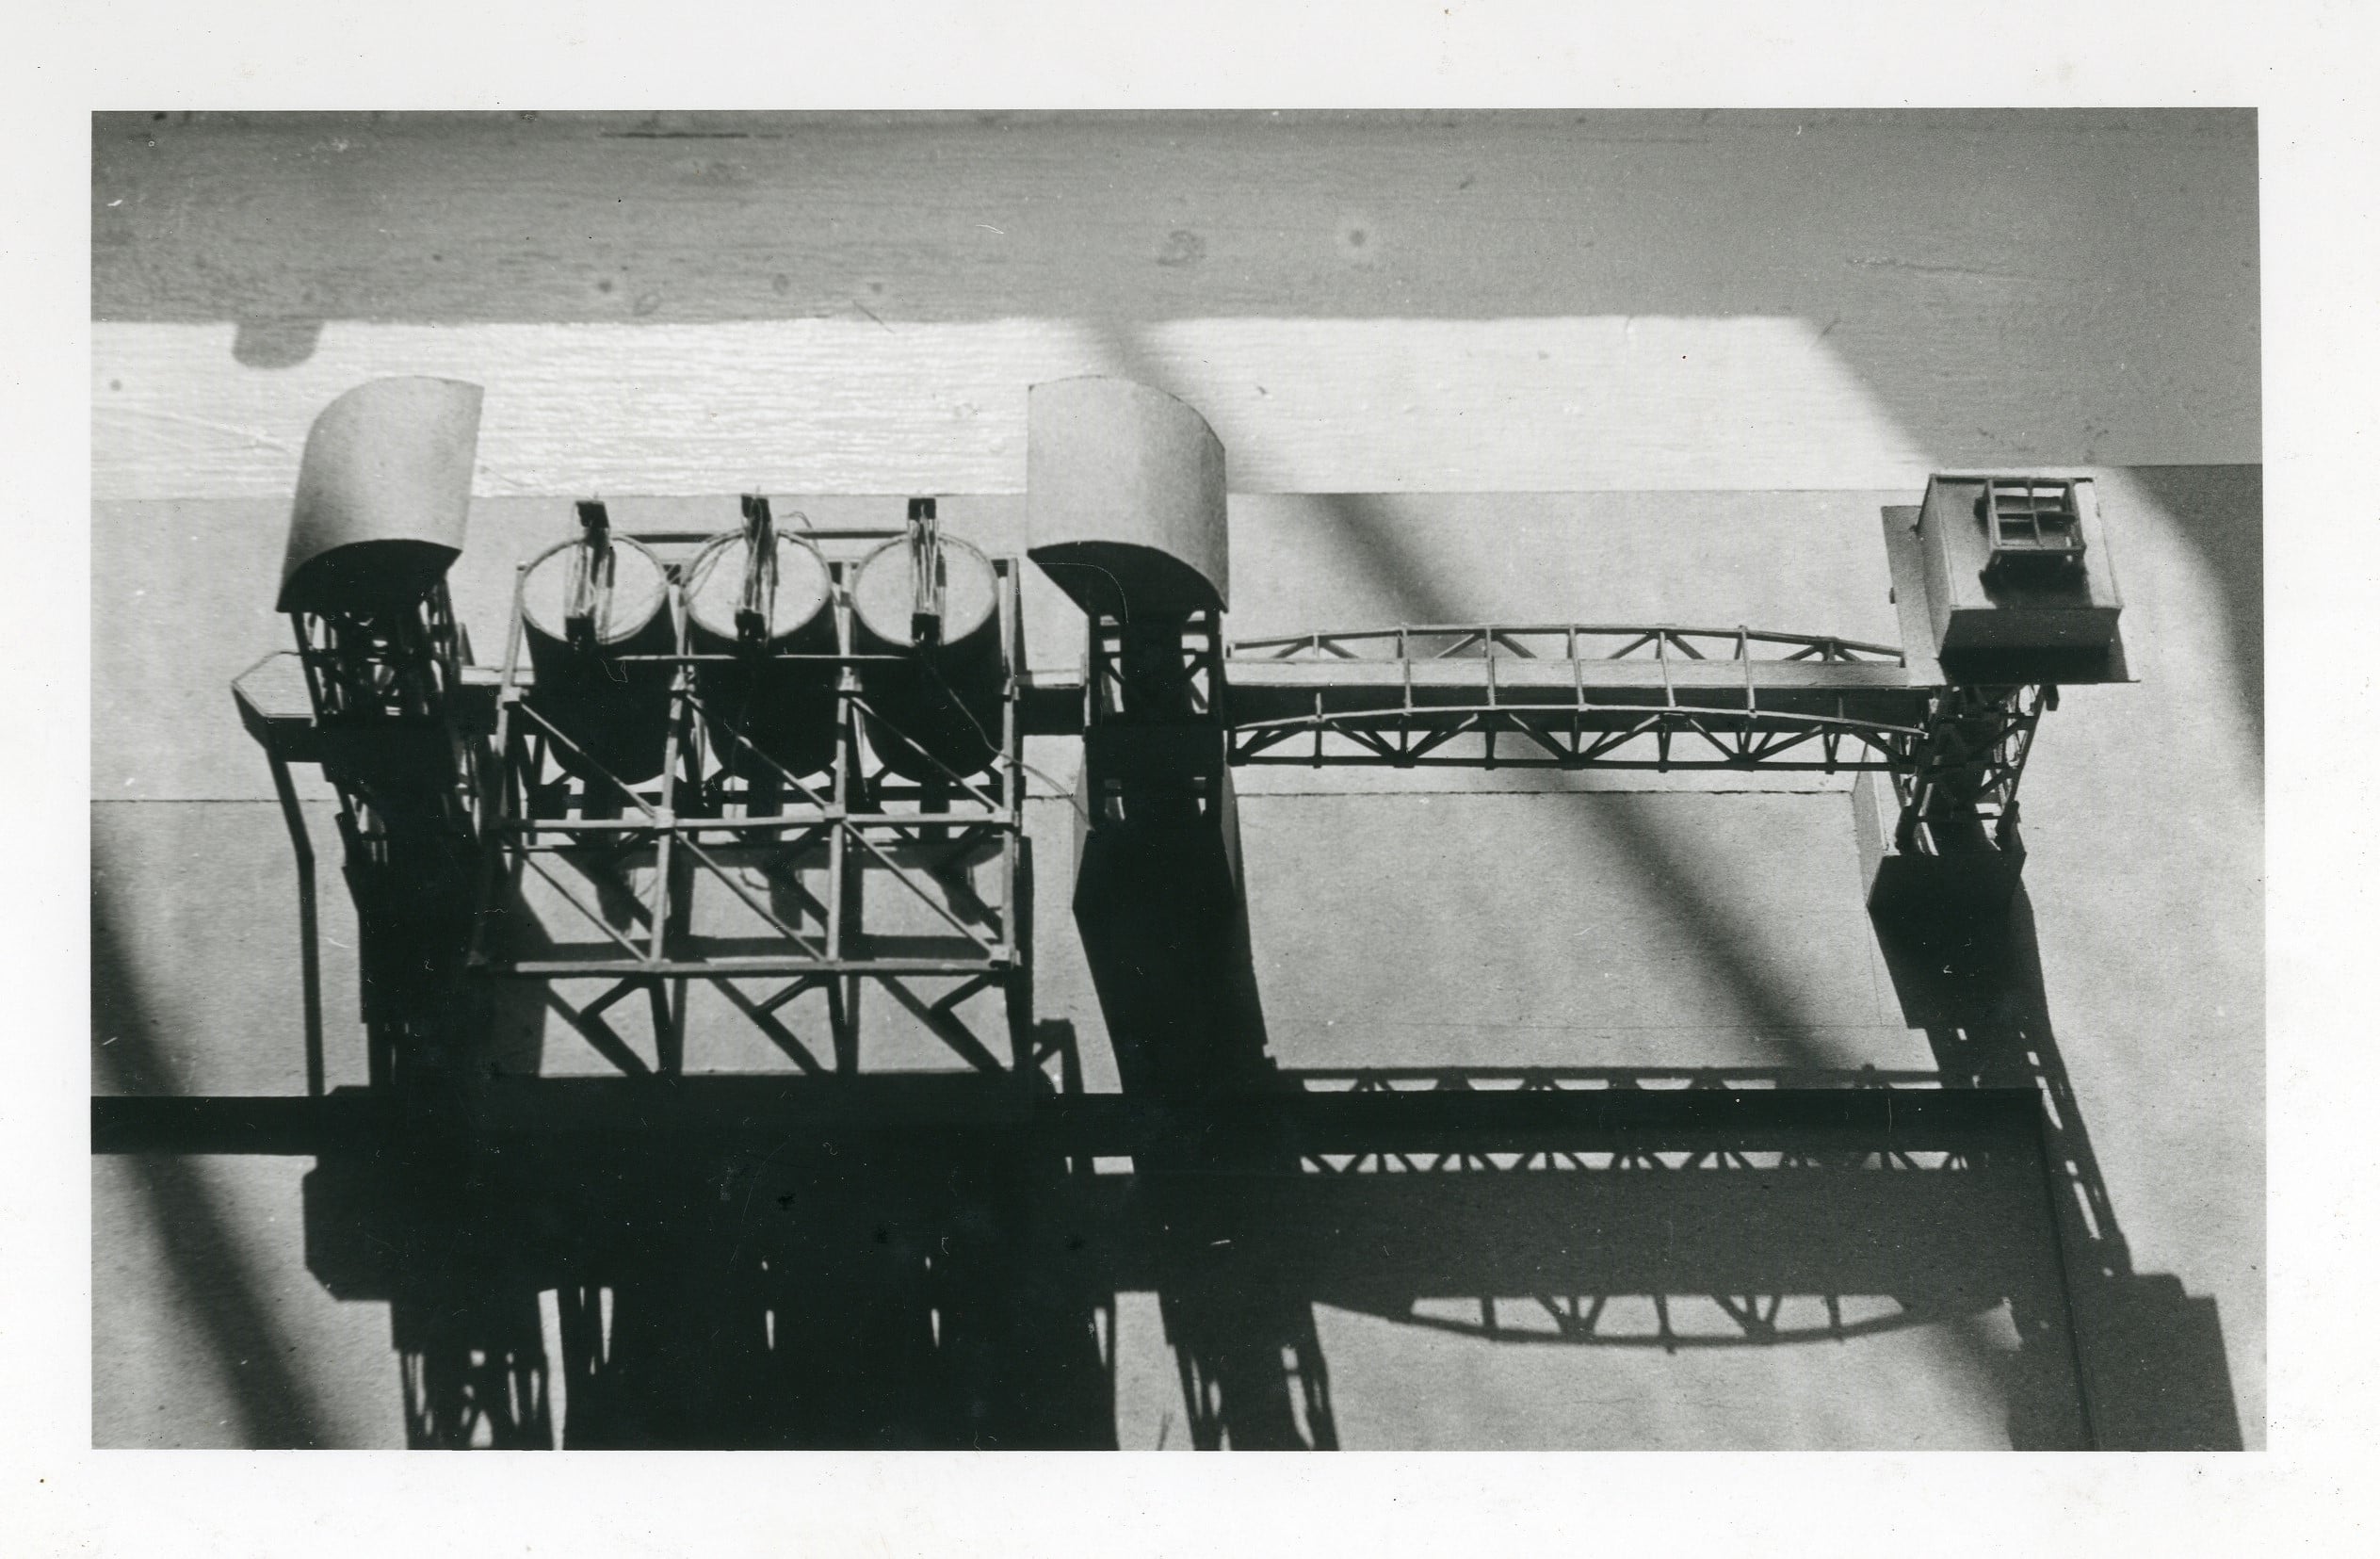 07-EnriqueNorton-Studio_RooseveltIslandBridgeTransformation-model